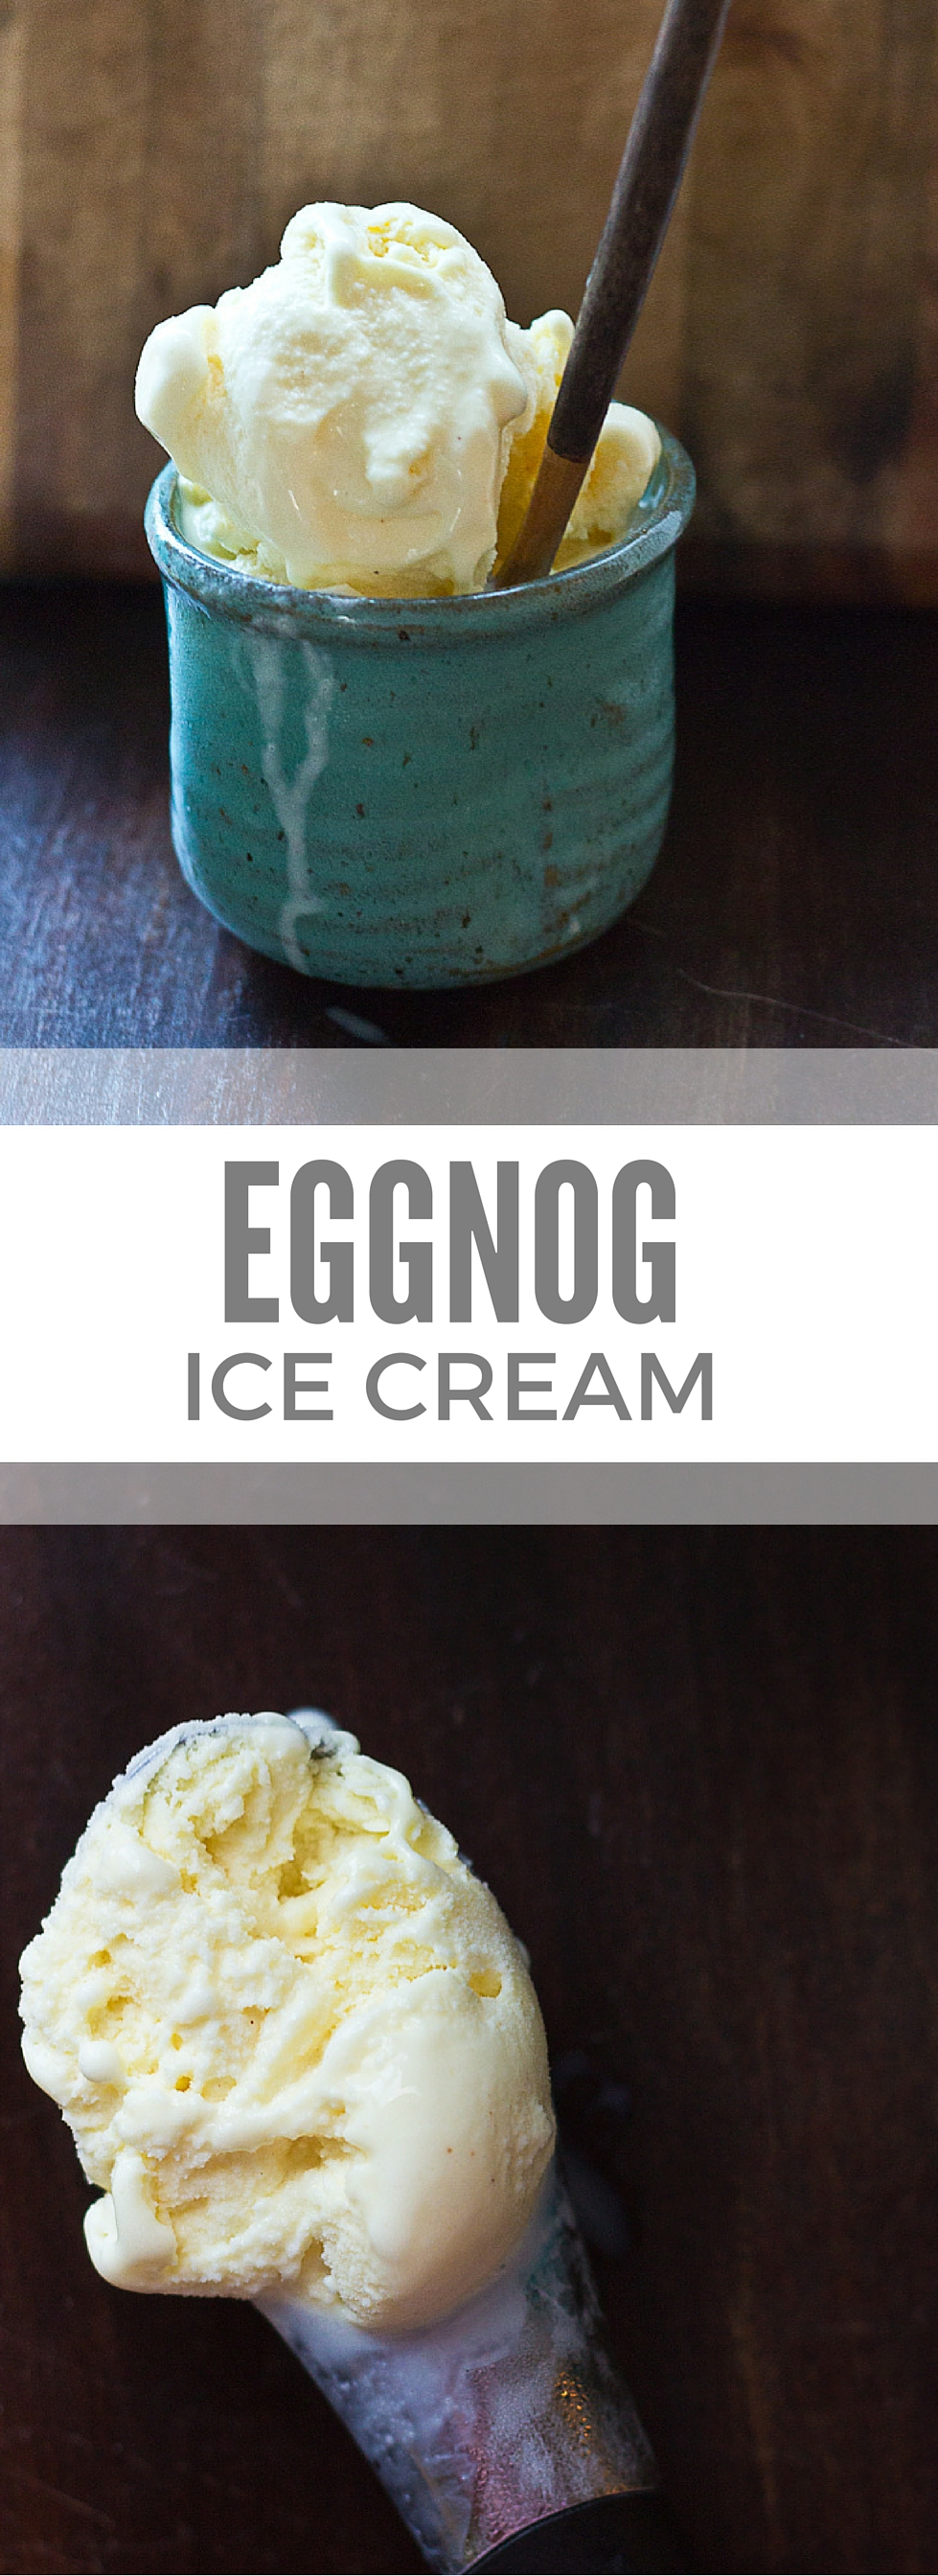 Eggnog Ice Cream Recipe — Dishmaps